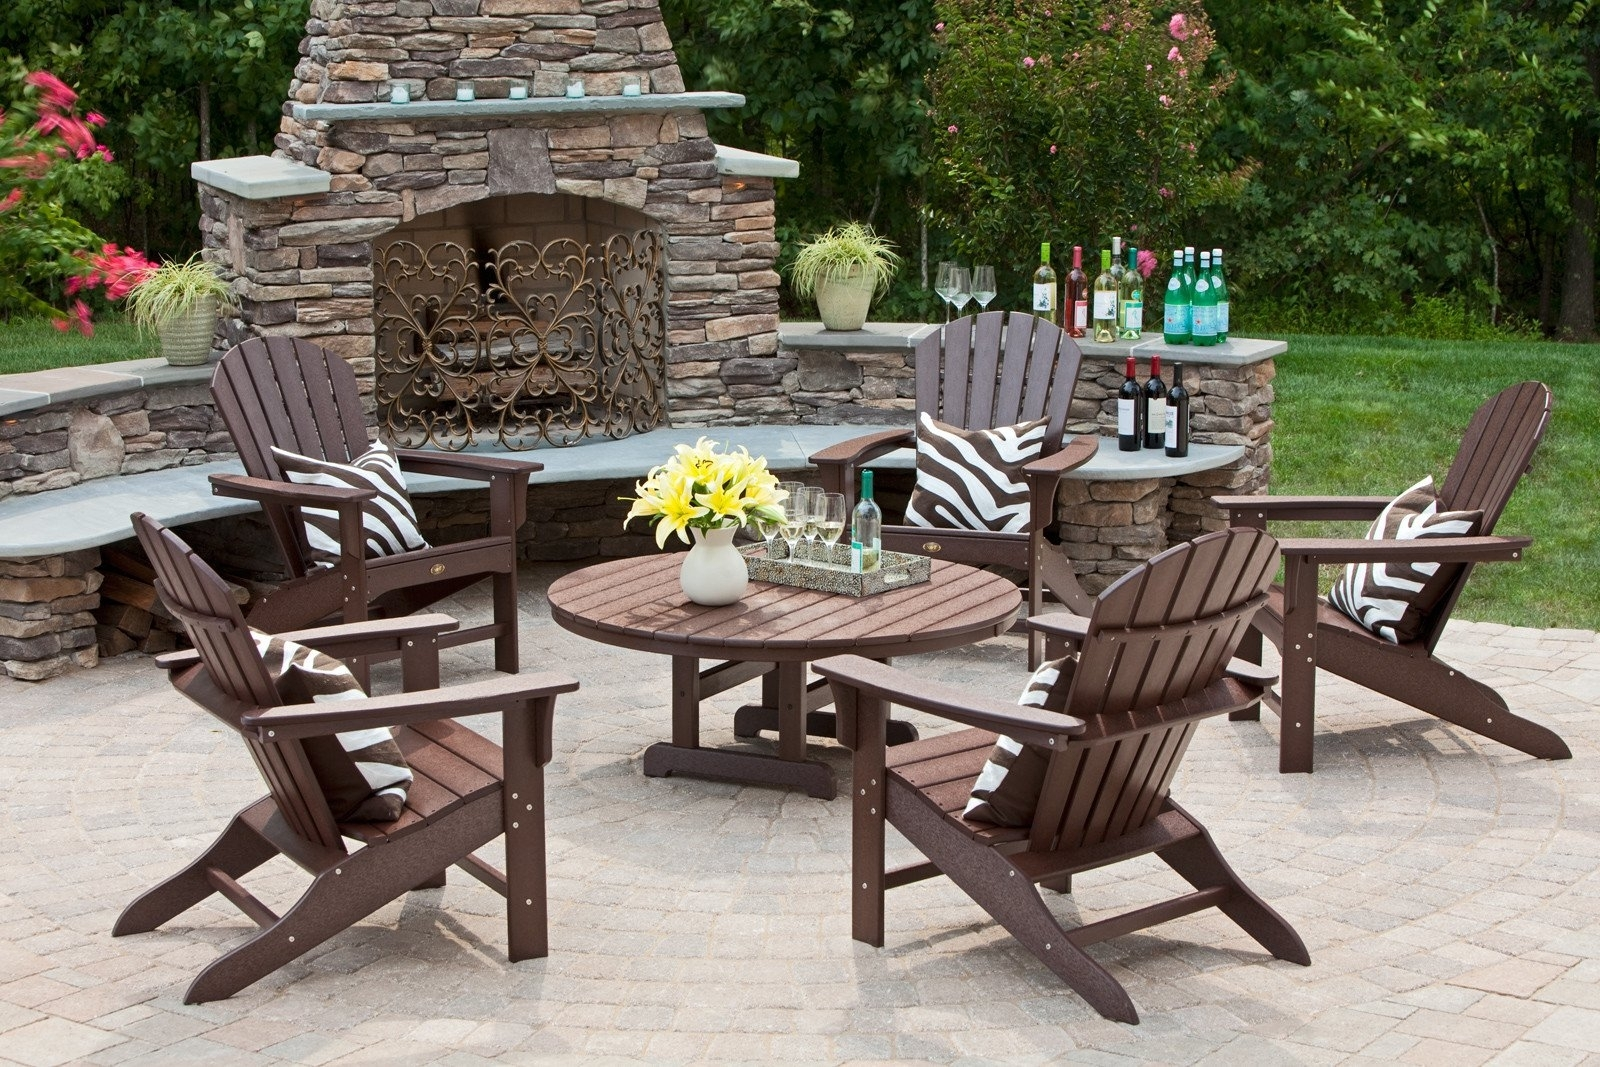 Trendy Sears Patio Furniture Conversation Sets With Regard To Patio : Patio Stones Onriture And Easy Conversation Sets Clearance (View 4 of 20)